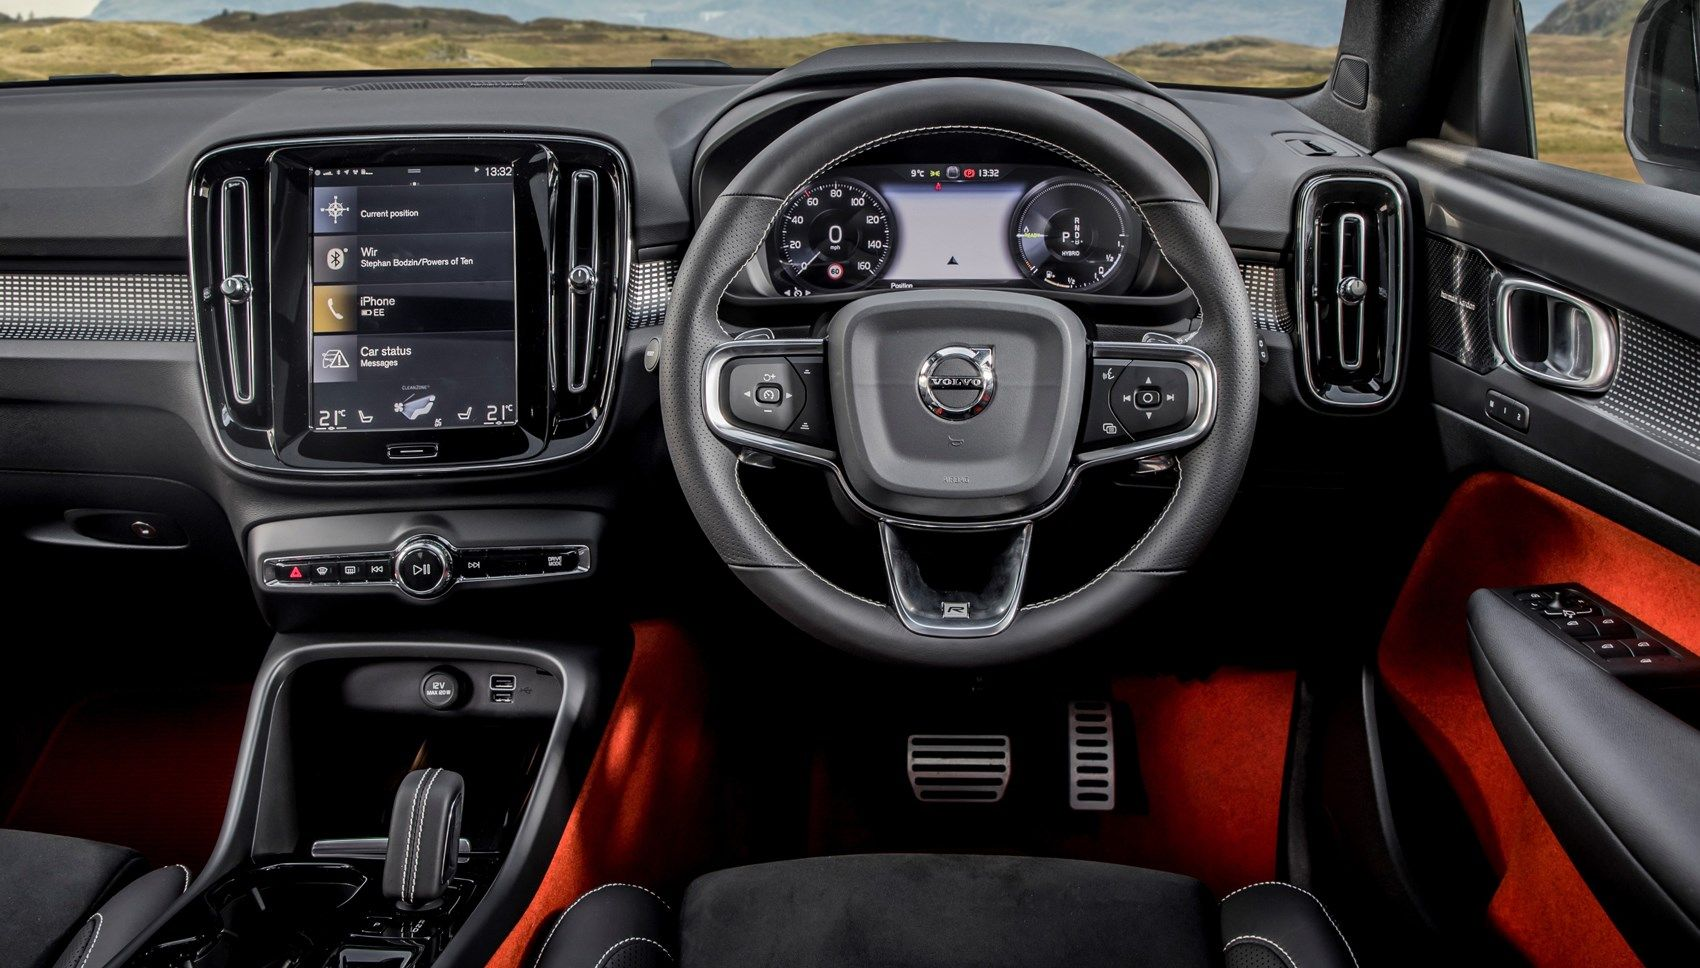 Volvo Xc40 Recharge Phev Hybrid 2020 Review The Numbers Game In 2020 Volvo Small Suv Used Volvo